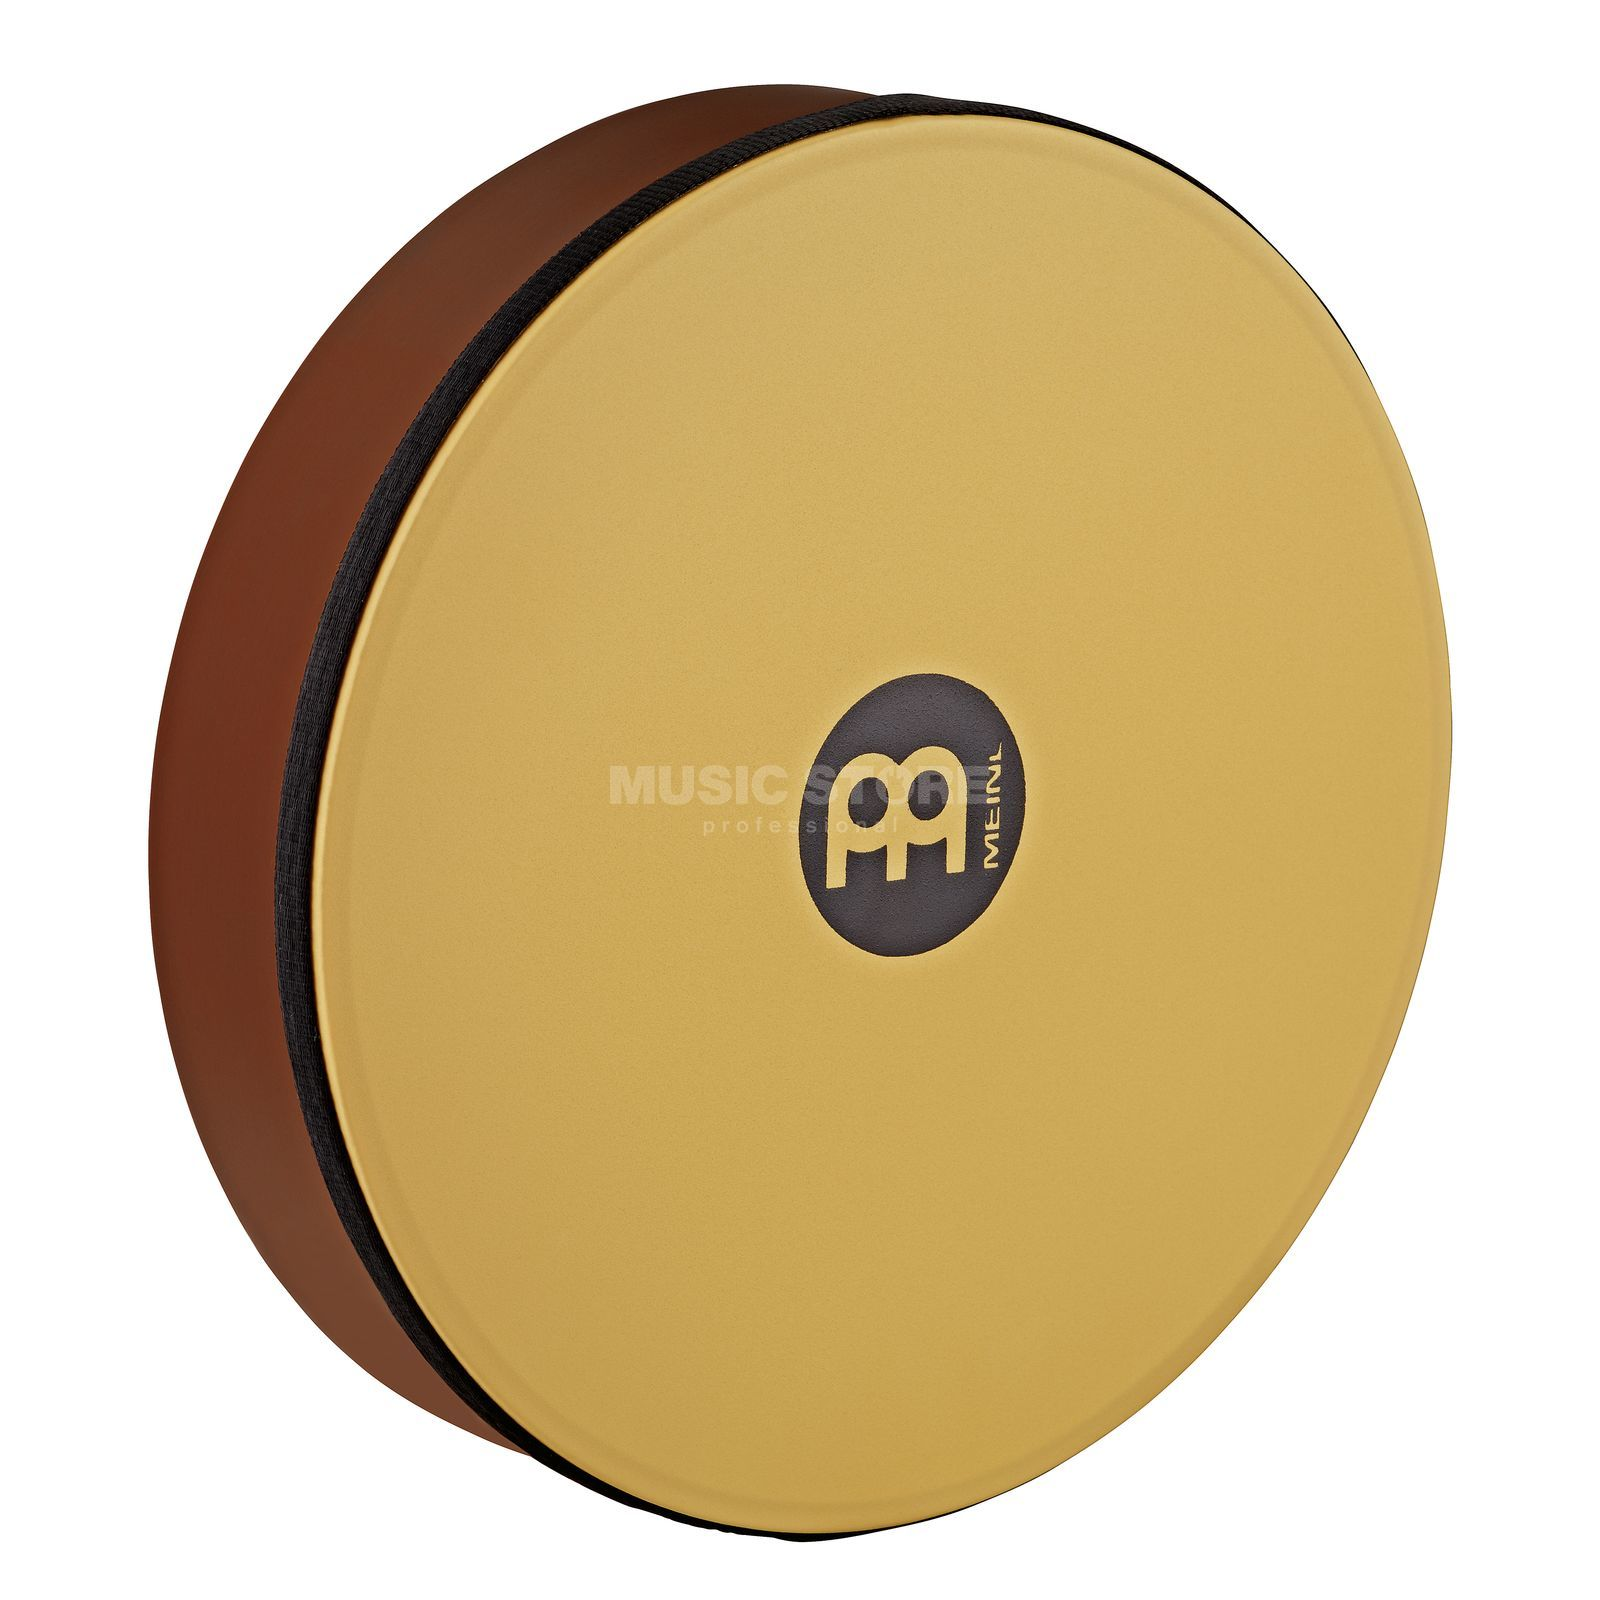 "Meinl Frame Drum HD12AB-TF, 12"", African Brown Изображение товара"